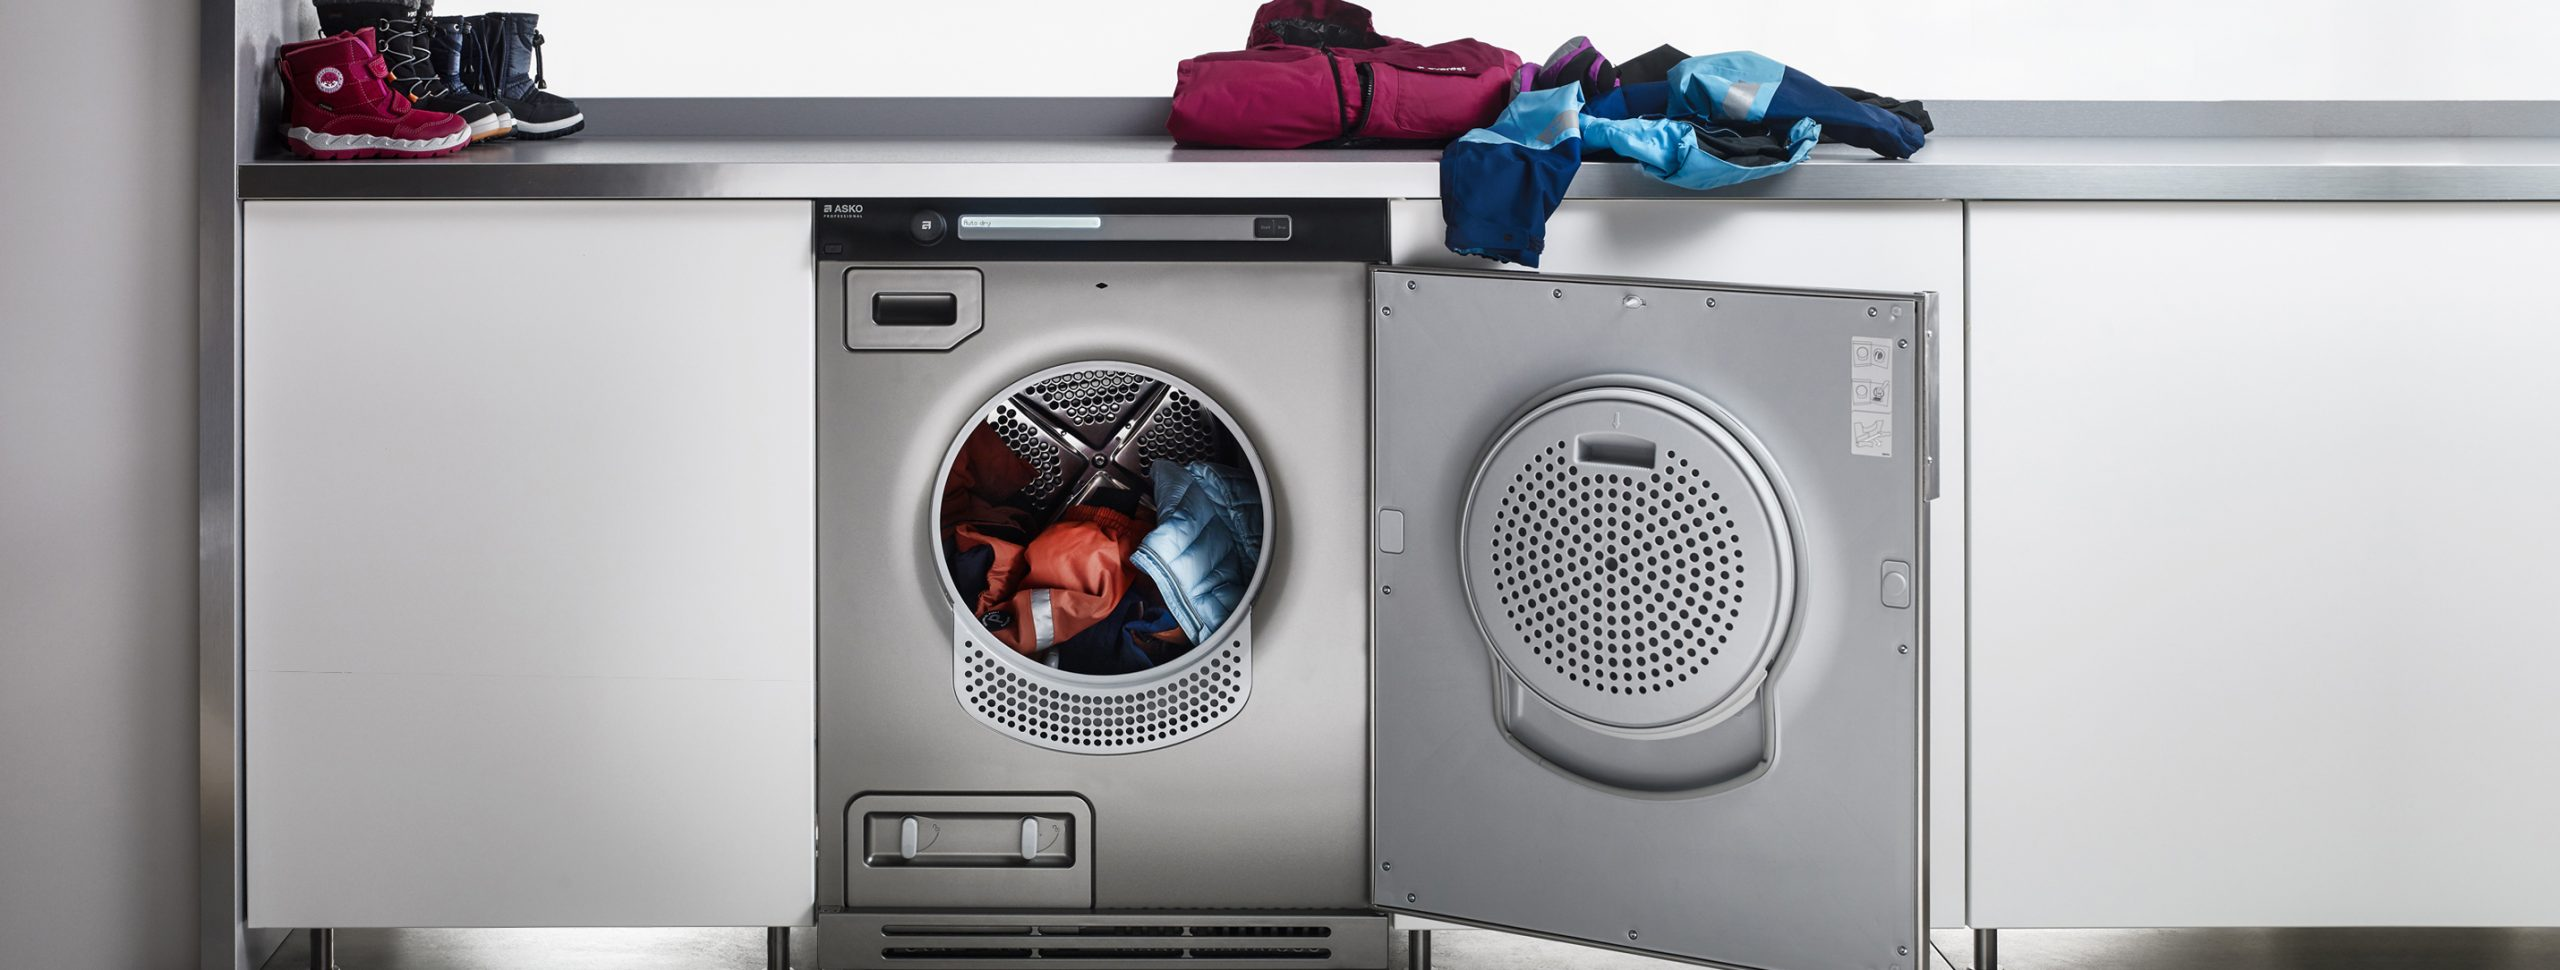 Photo of Tumble dryer